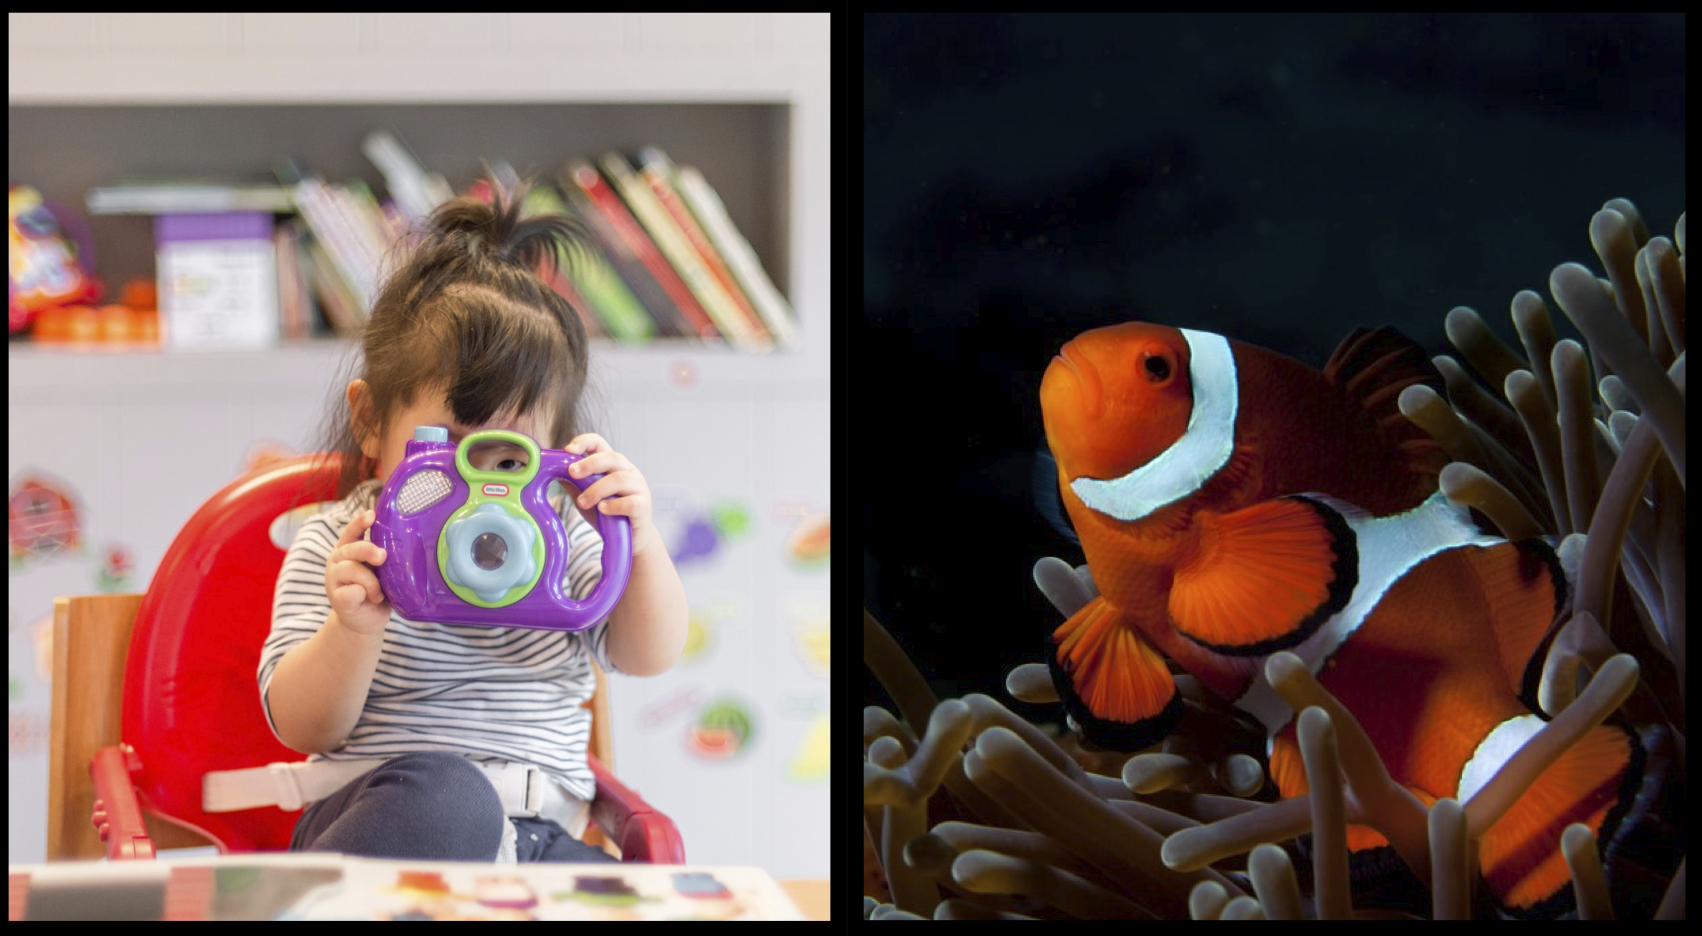 composite image: left infant child with toy; right detail of a clownfish